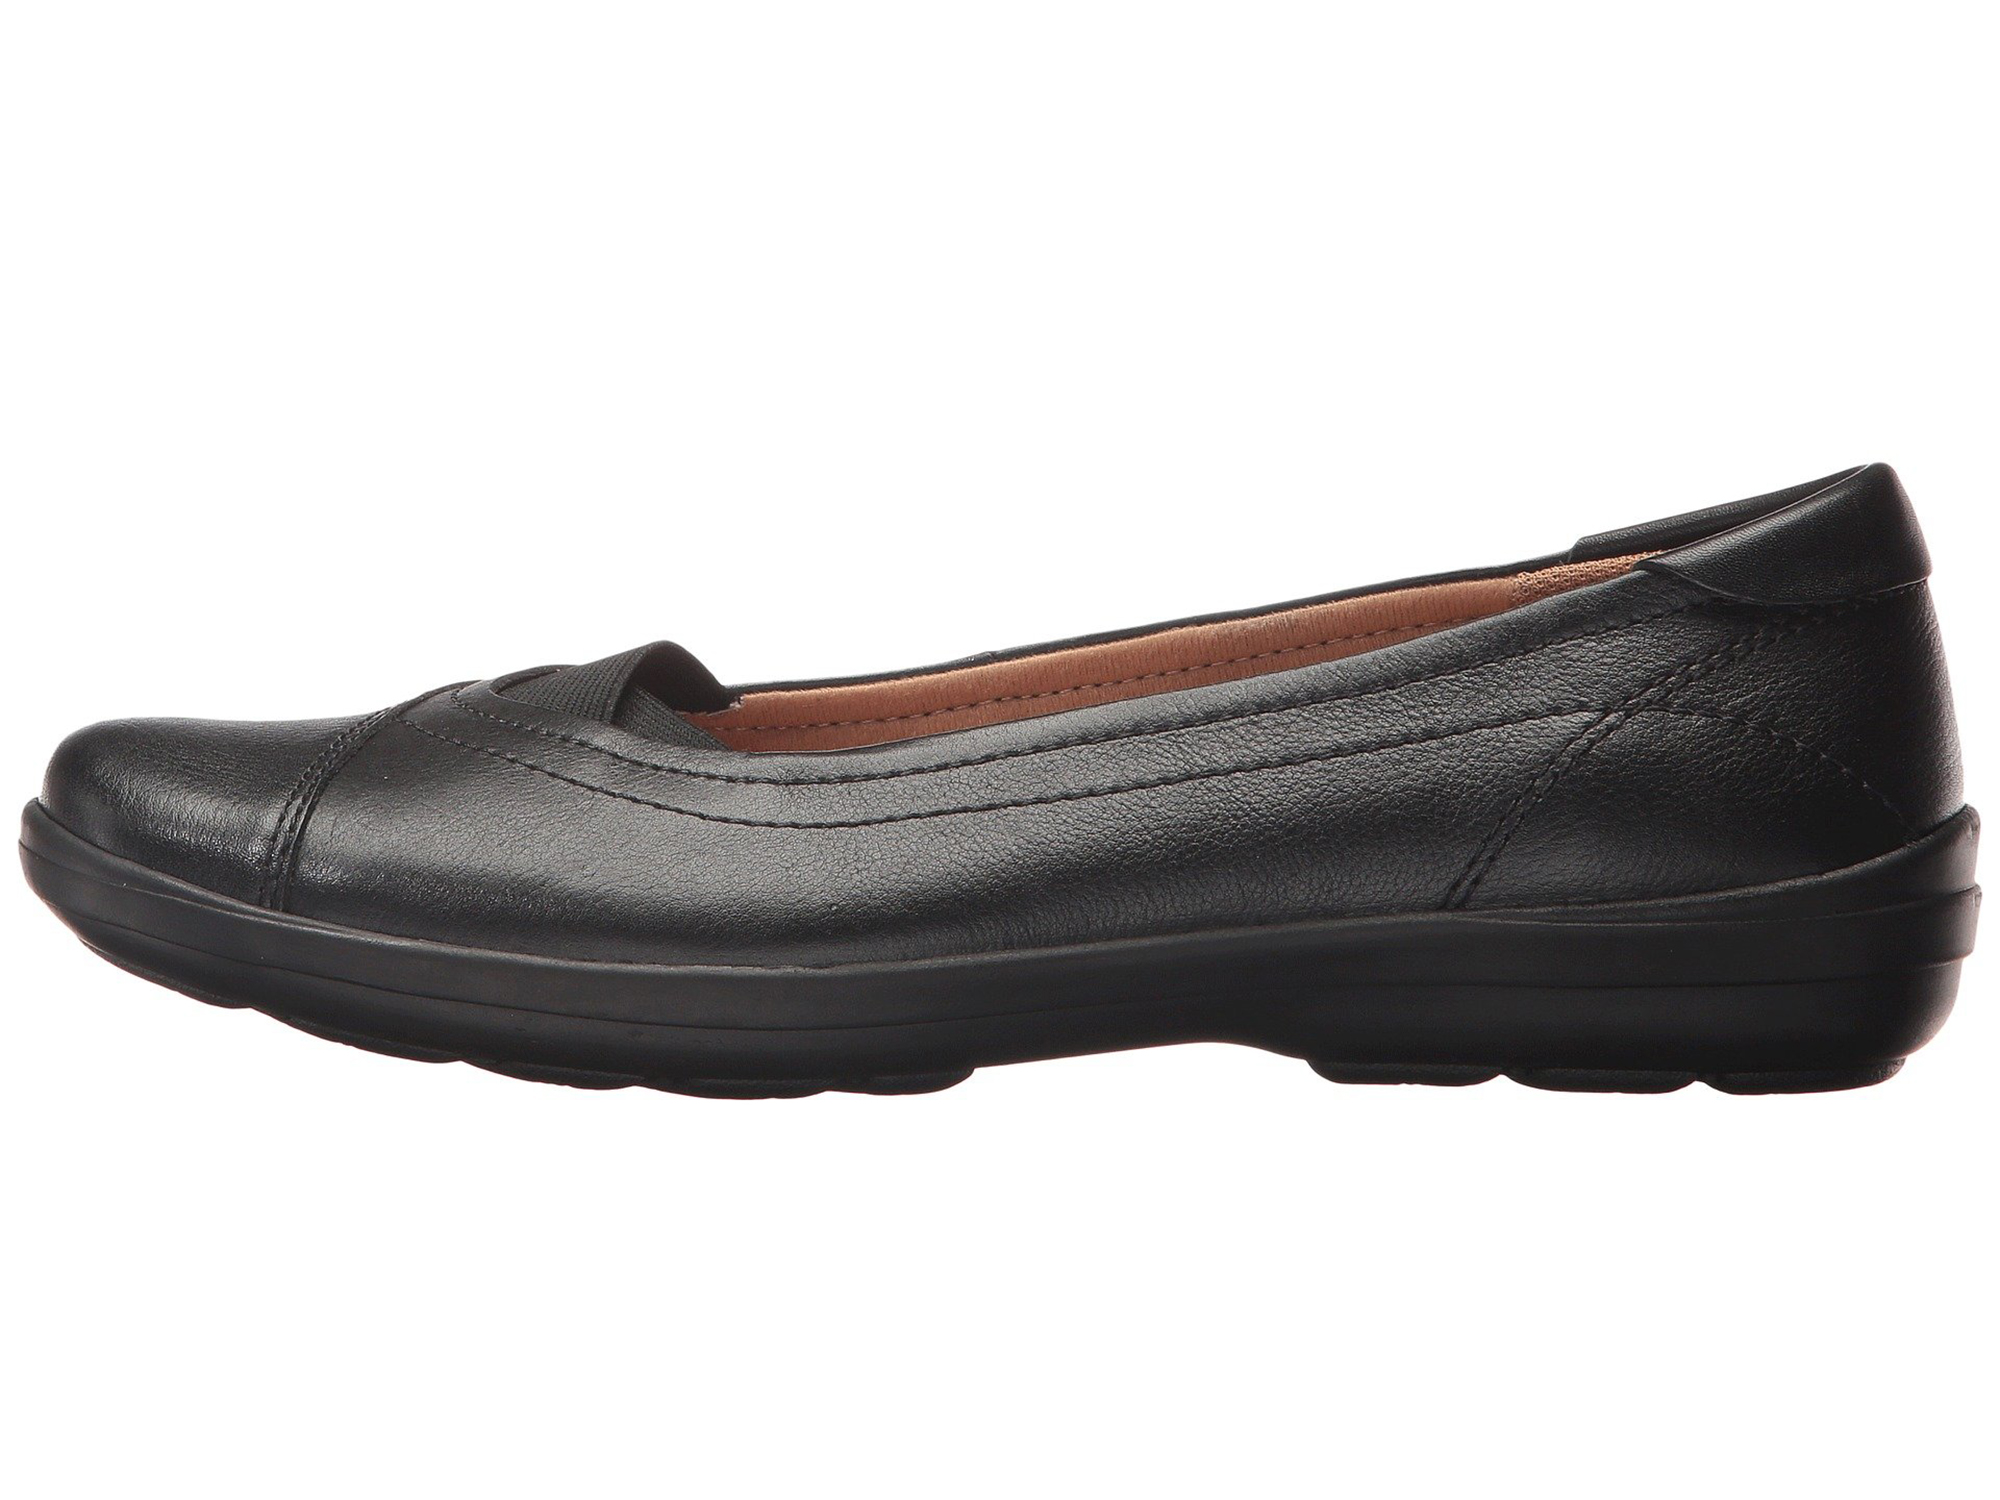 49e0557bb Comfortiva Women's Renee Black Leather Casual Comfort Flats Shoes | eBay